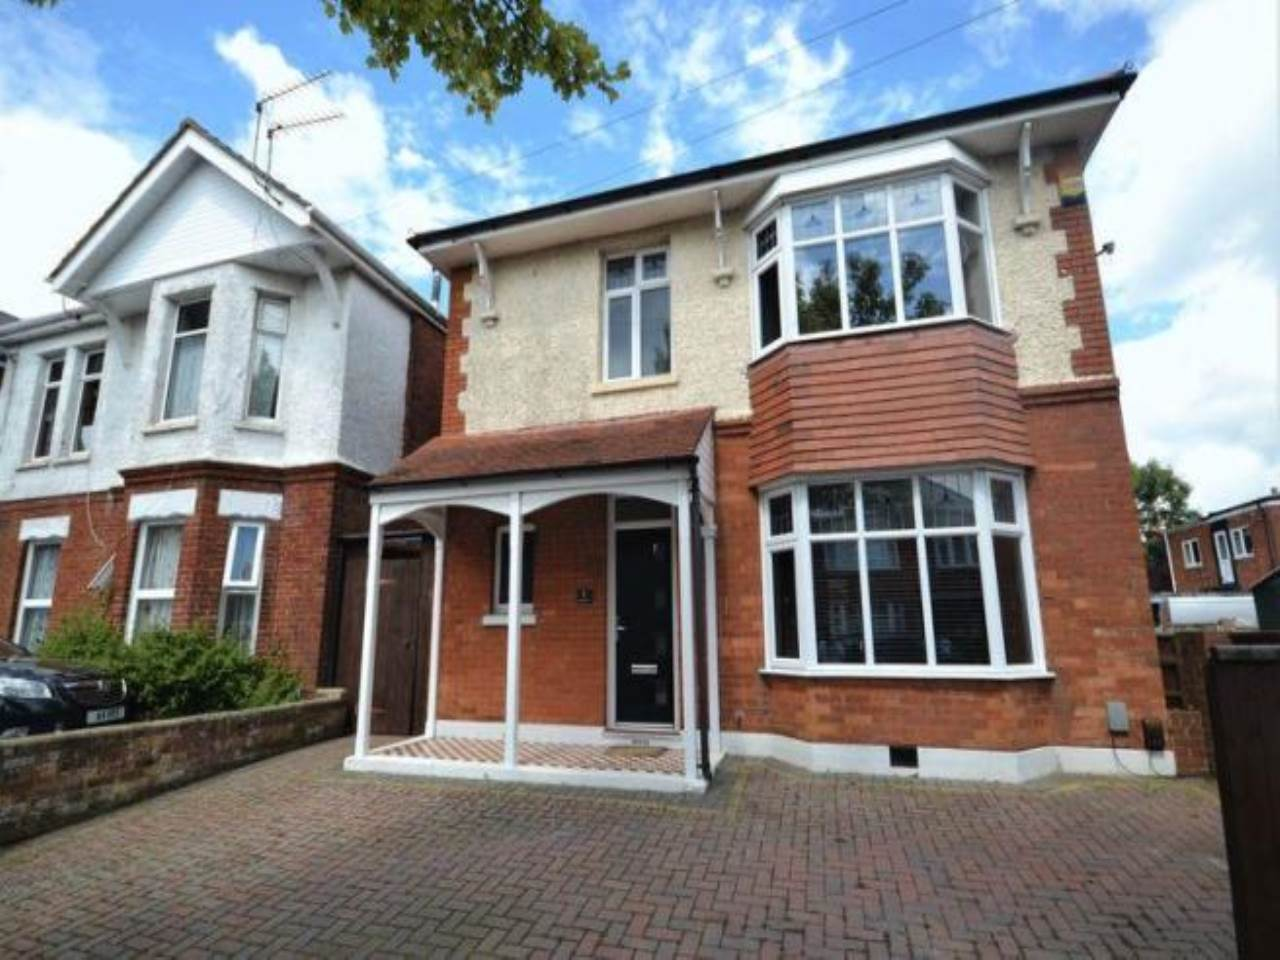 4 bed house for sale in Cowper Road, Moordown - Property Image 1